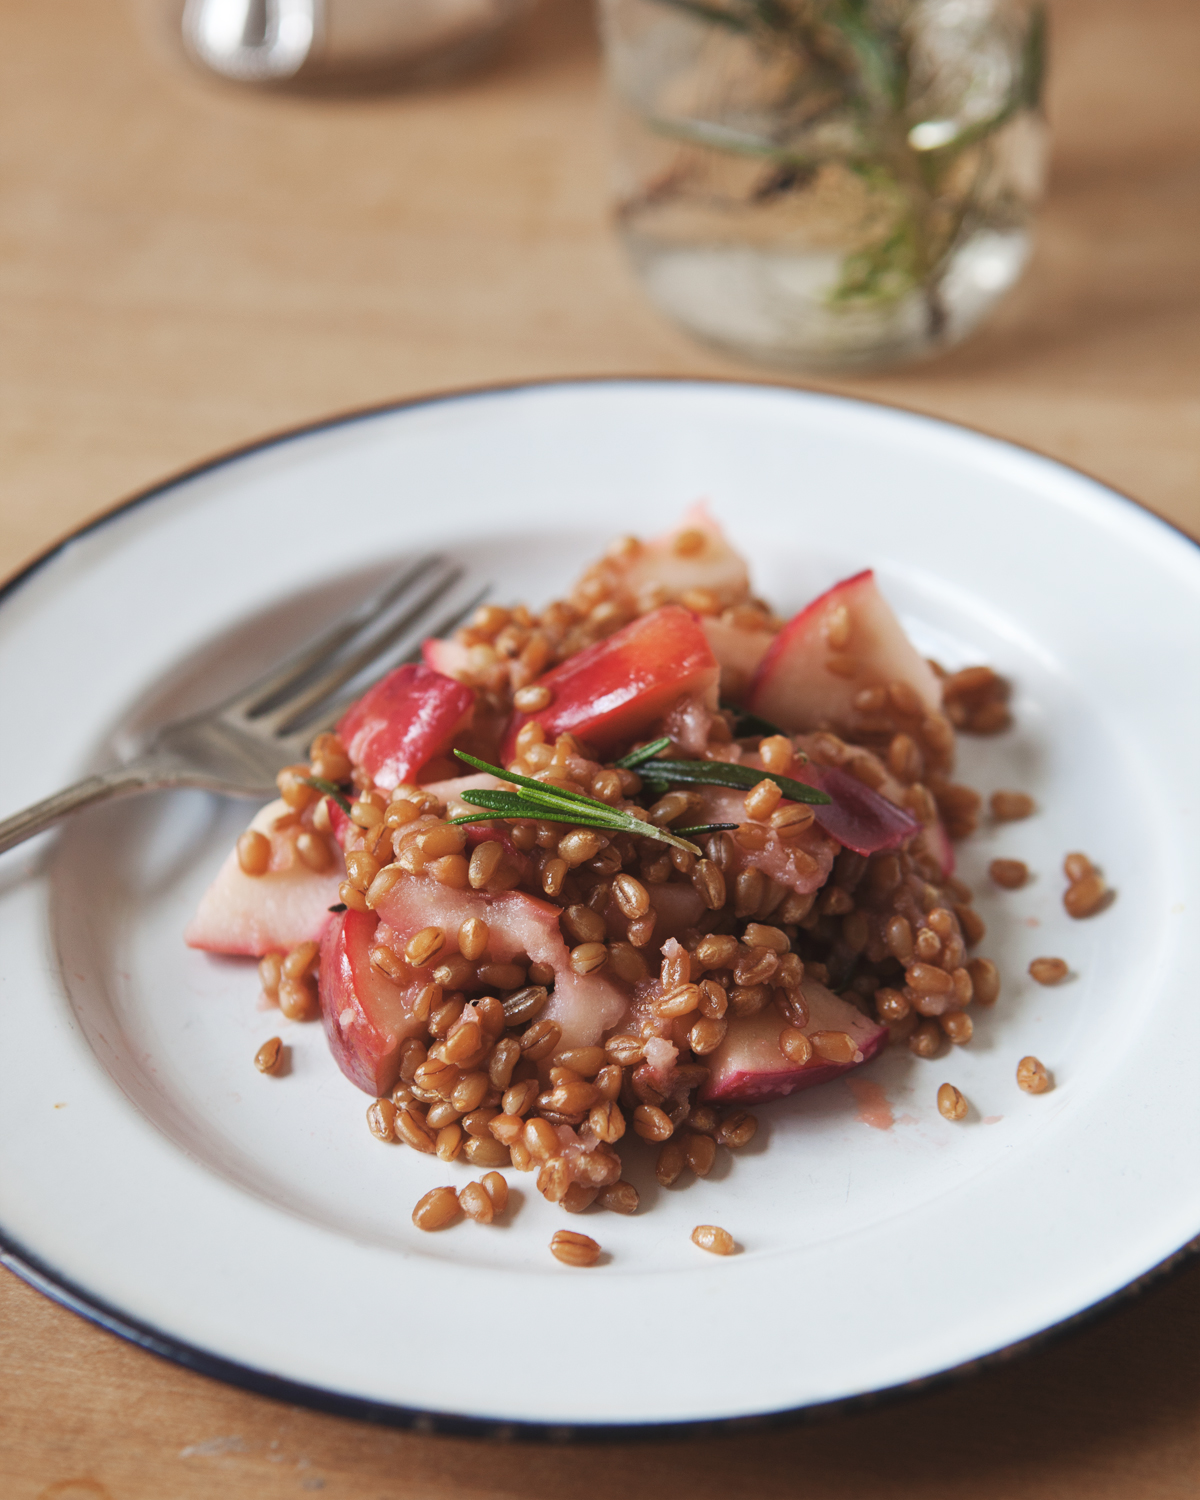 Warm-Rosemary-Apple-Wheatberry-Salad_03.jpg